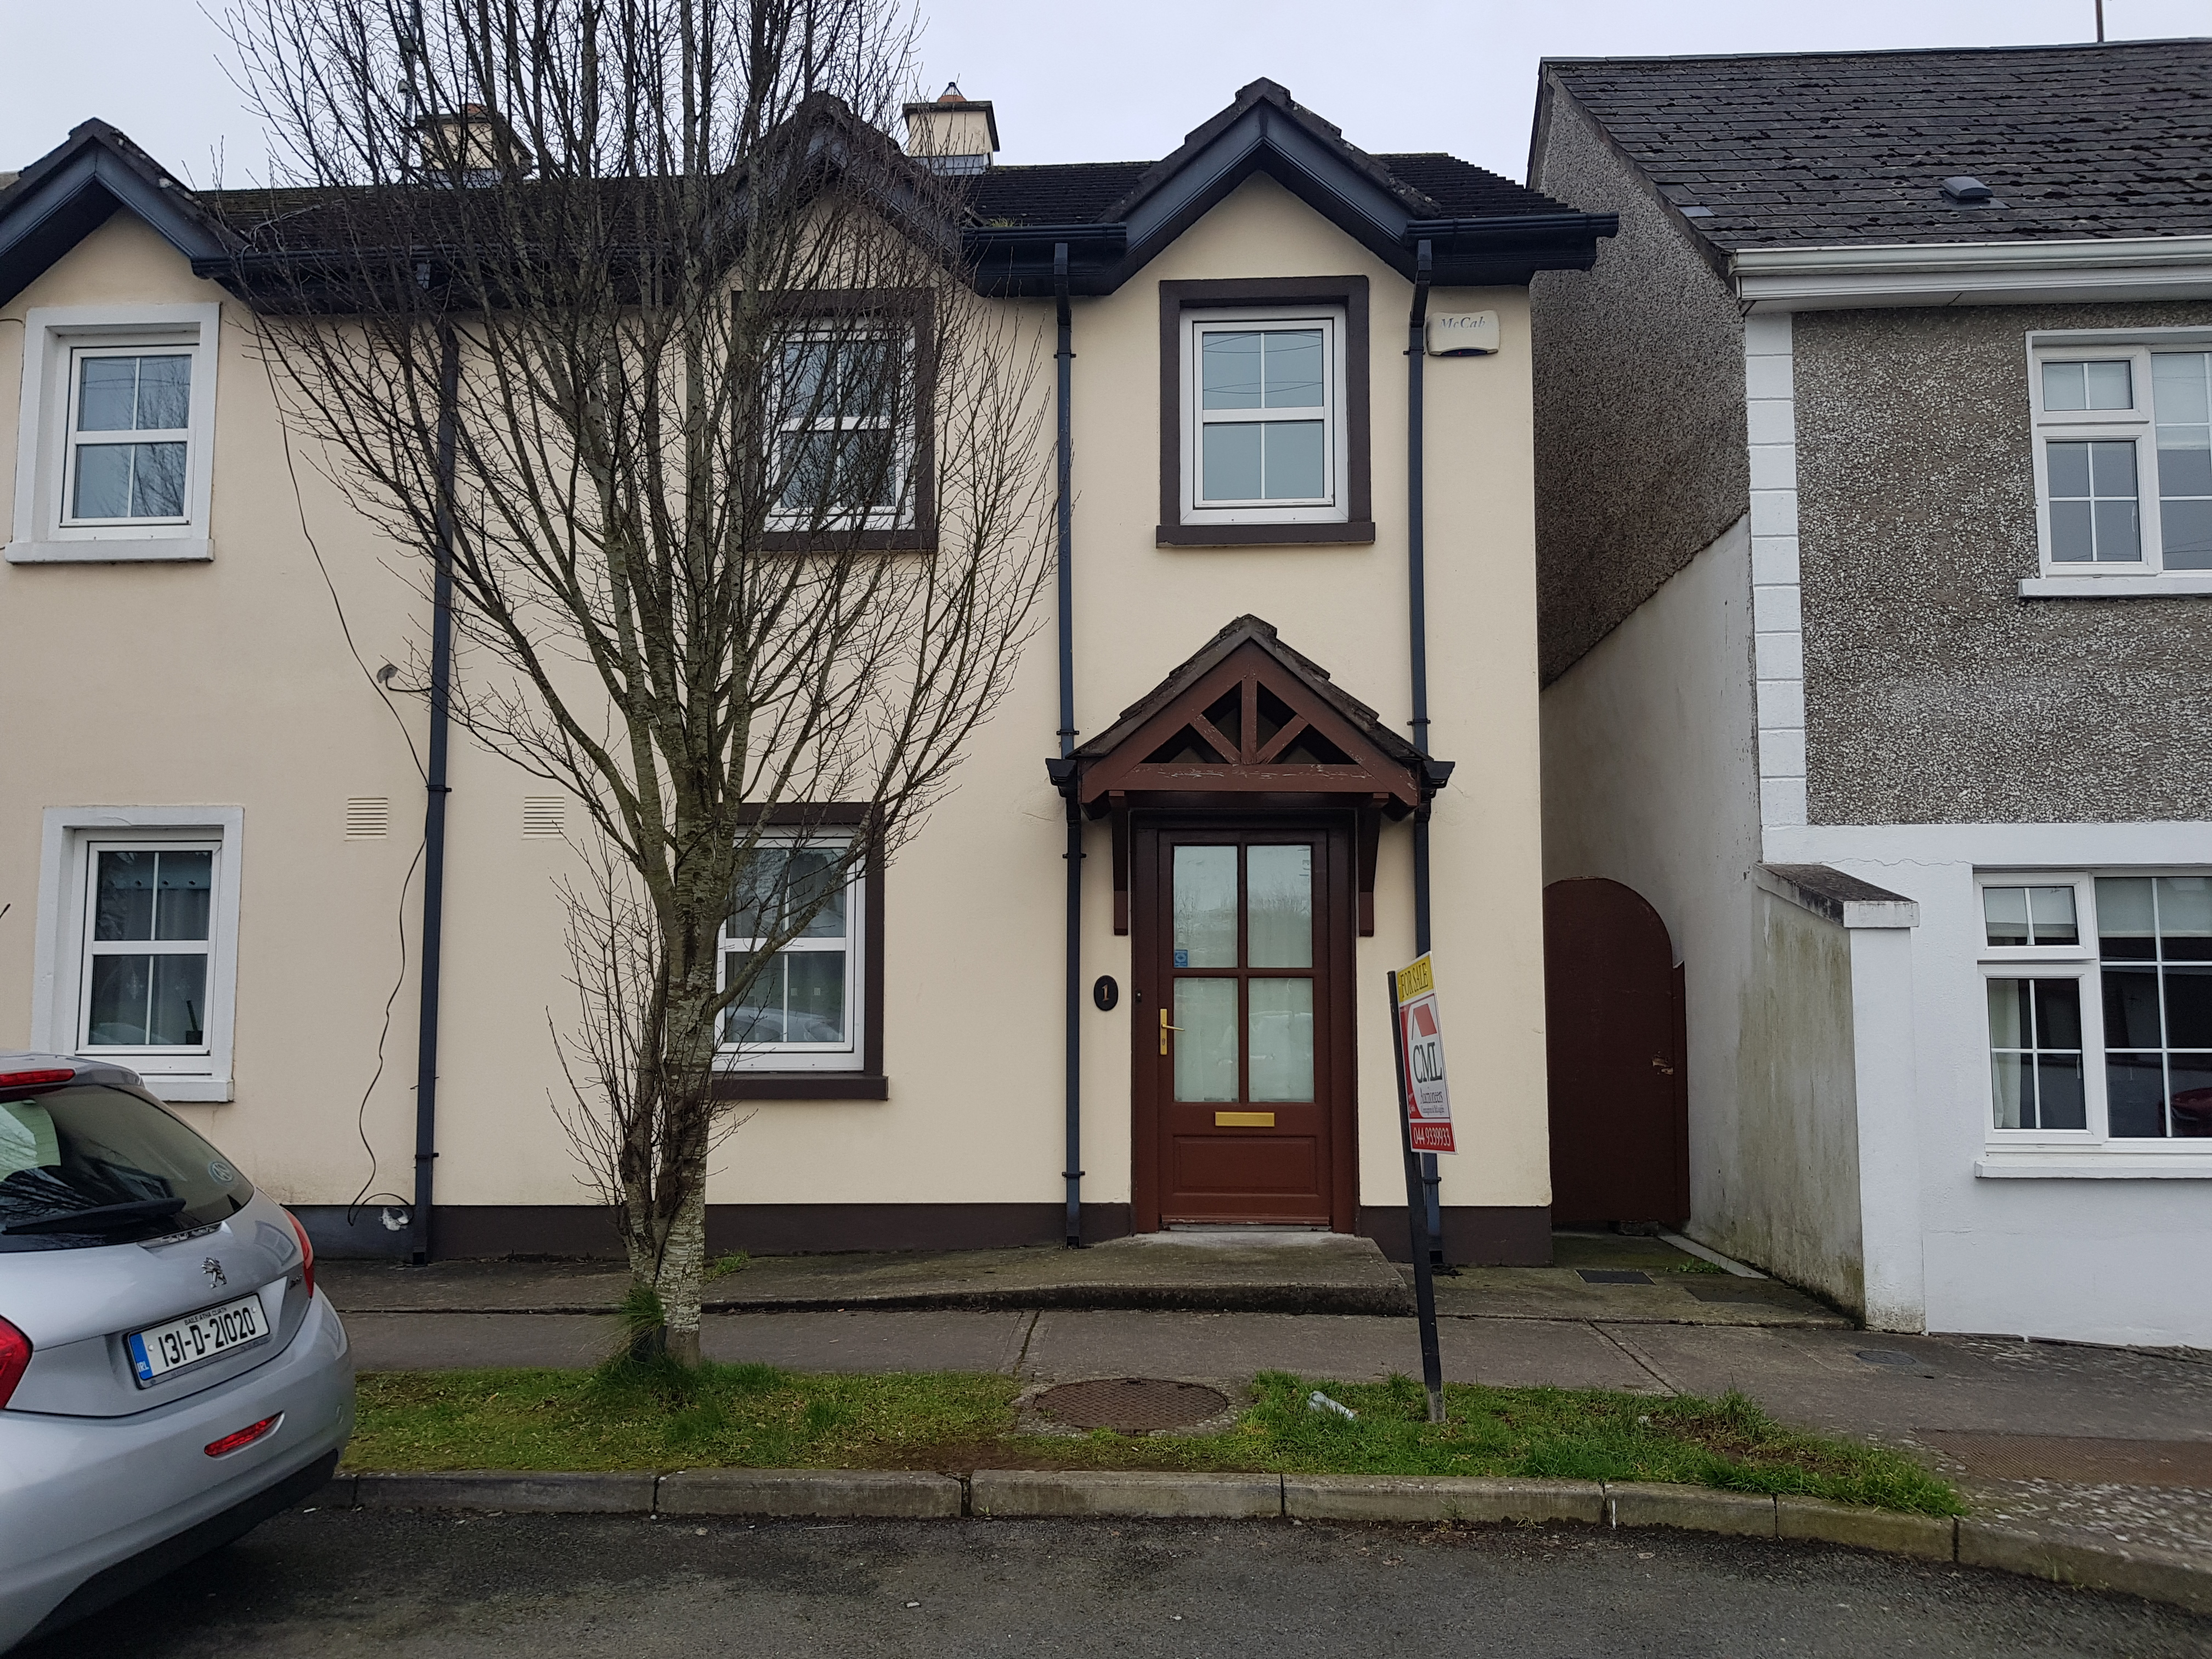 1 RATHGARVE COURT, WATER ST, CASTLEPOLLARD, CO WESTMEATH N91 V3H4